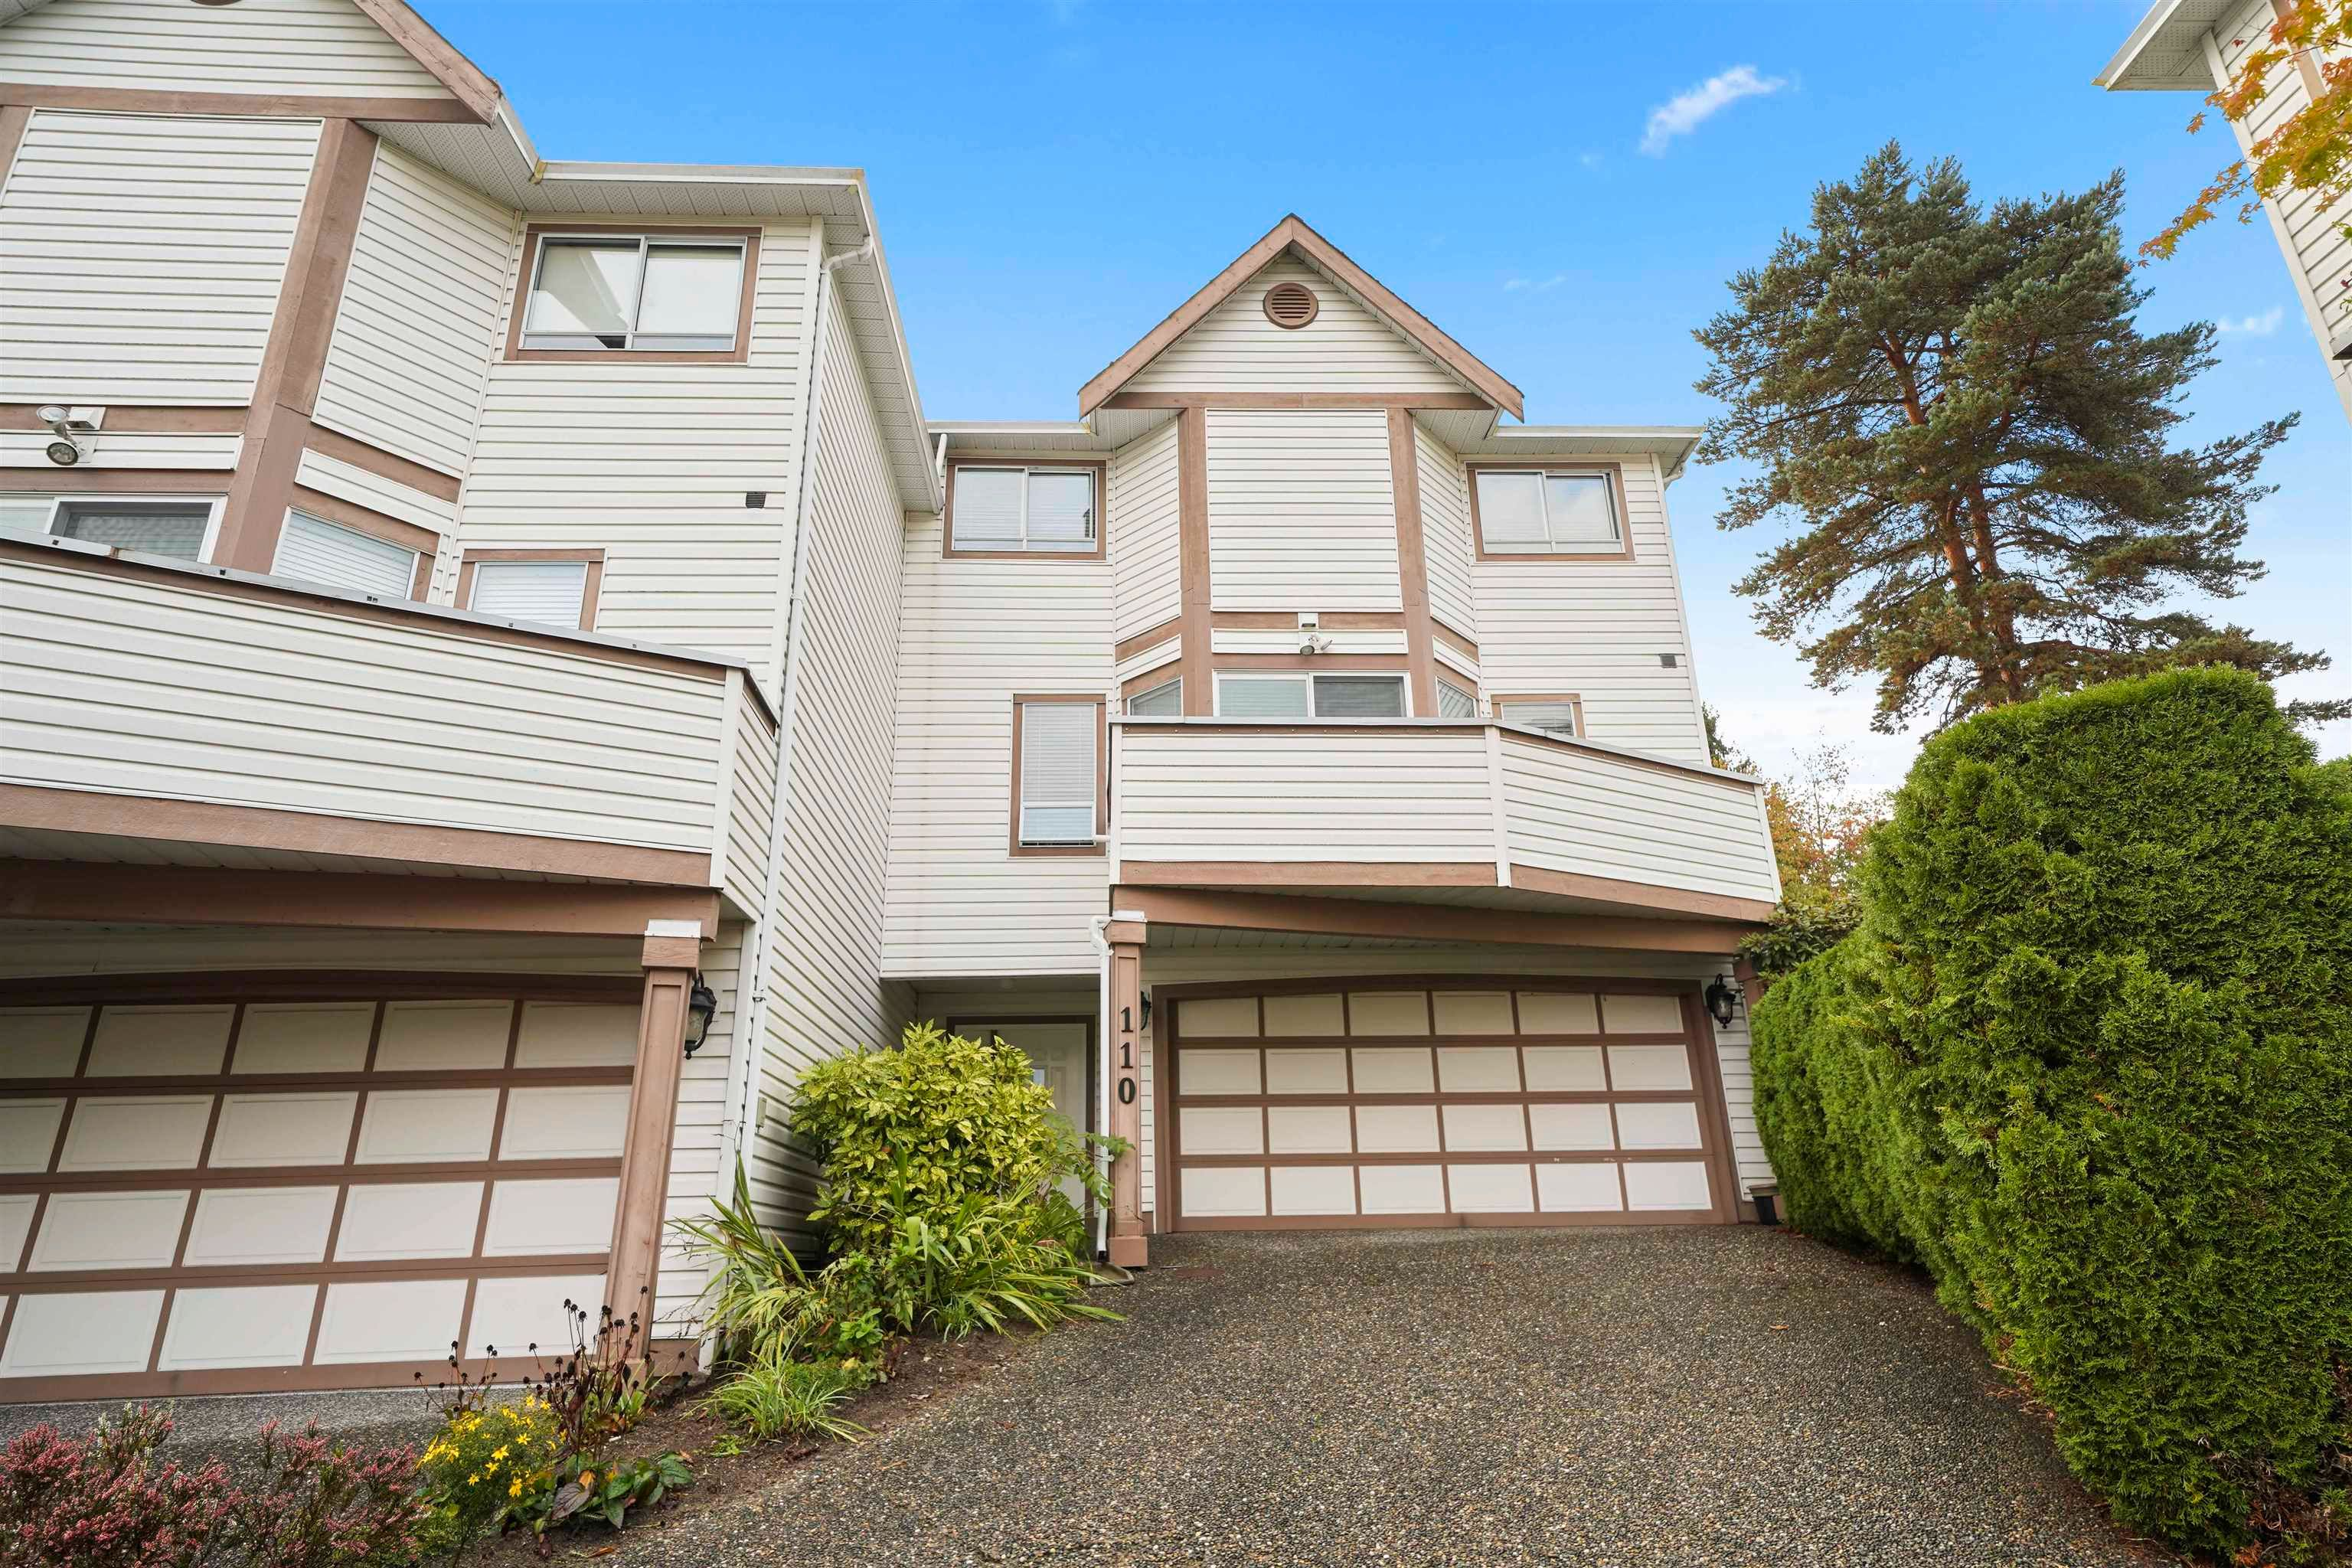 """Main Photo: 110 1232 JOHNSON Street in Coquitlam: Scott Creek Townhouse for sale in """"GREENHILL PLACE"""" : MLS®# R2622210"""